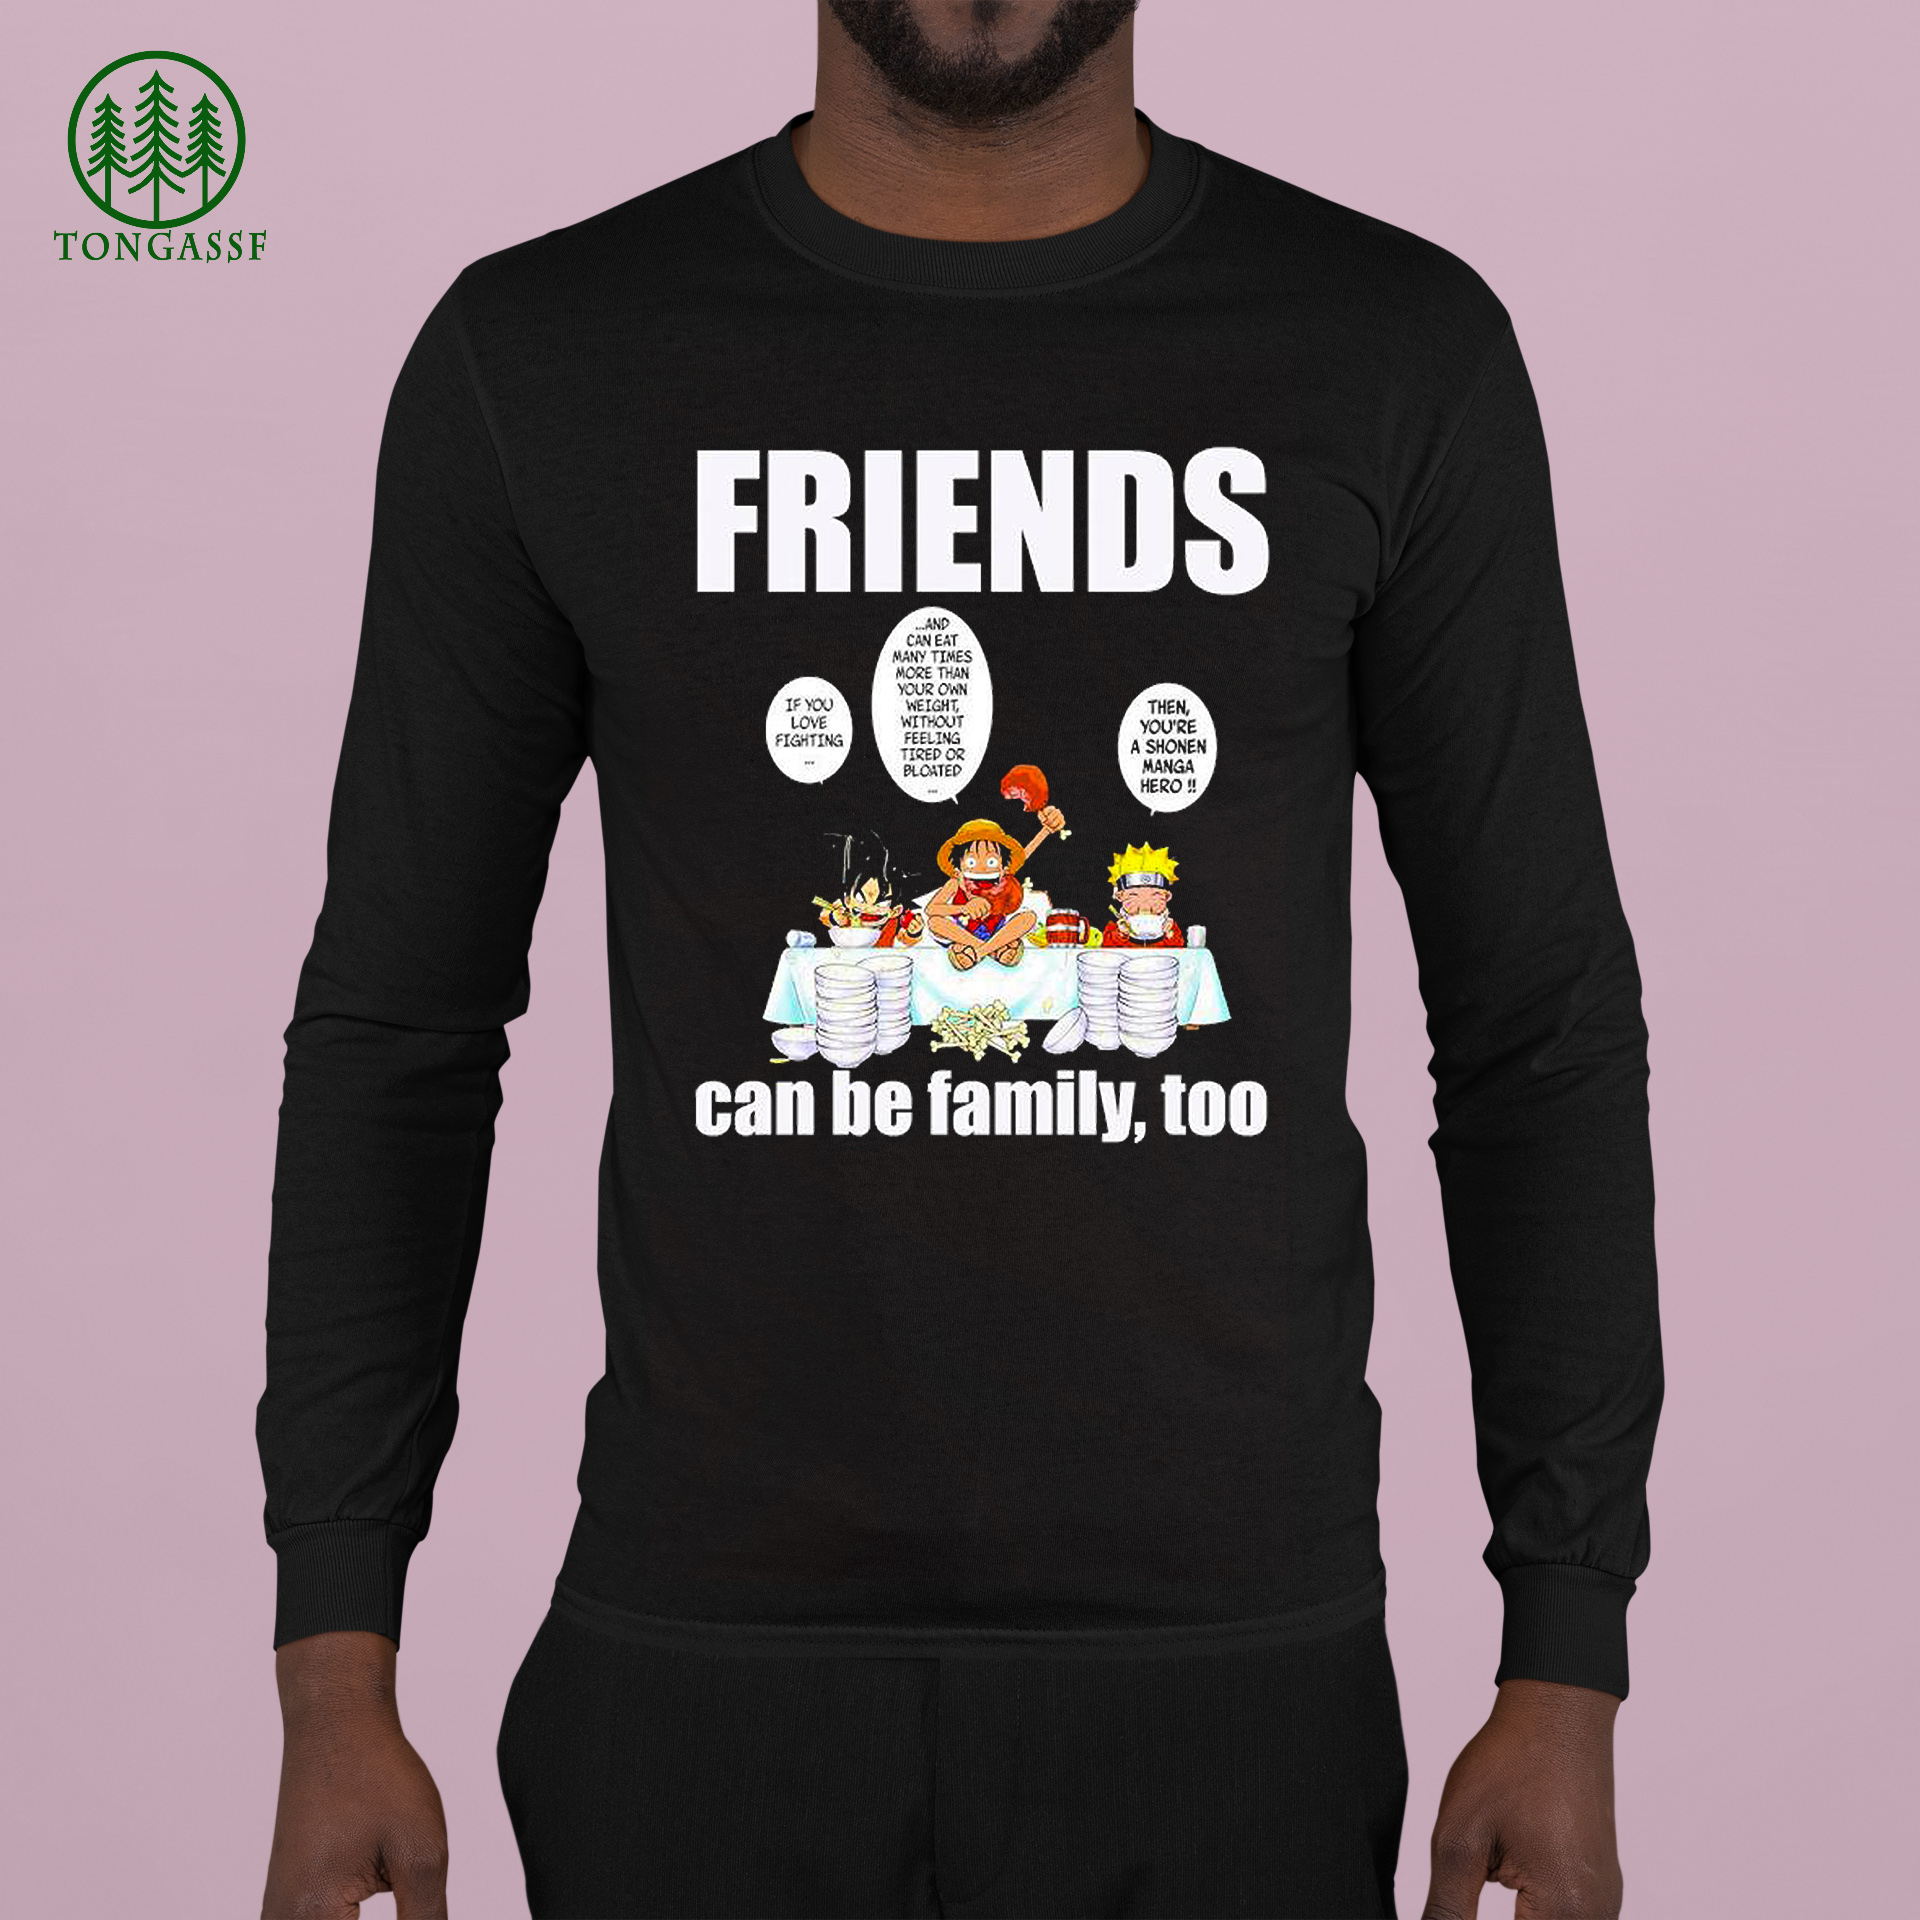 Son Goku and Luffy and Naruto friends can be family too shirt